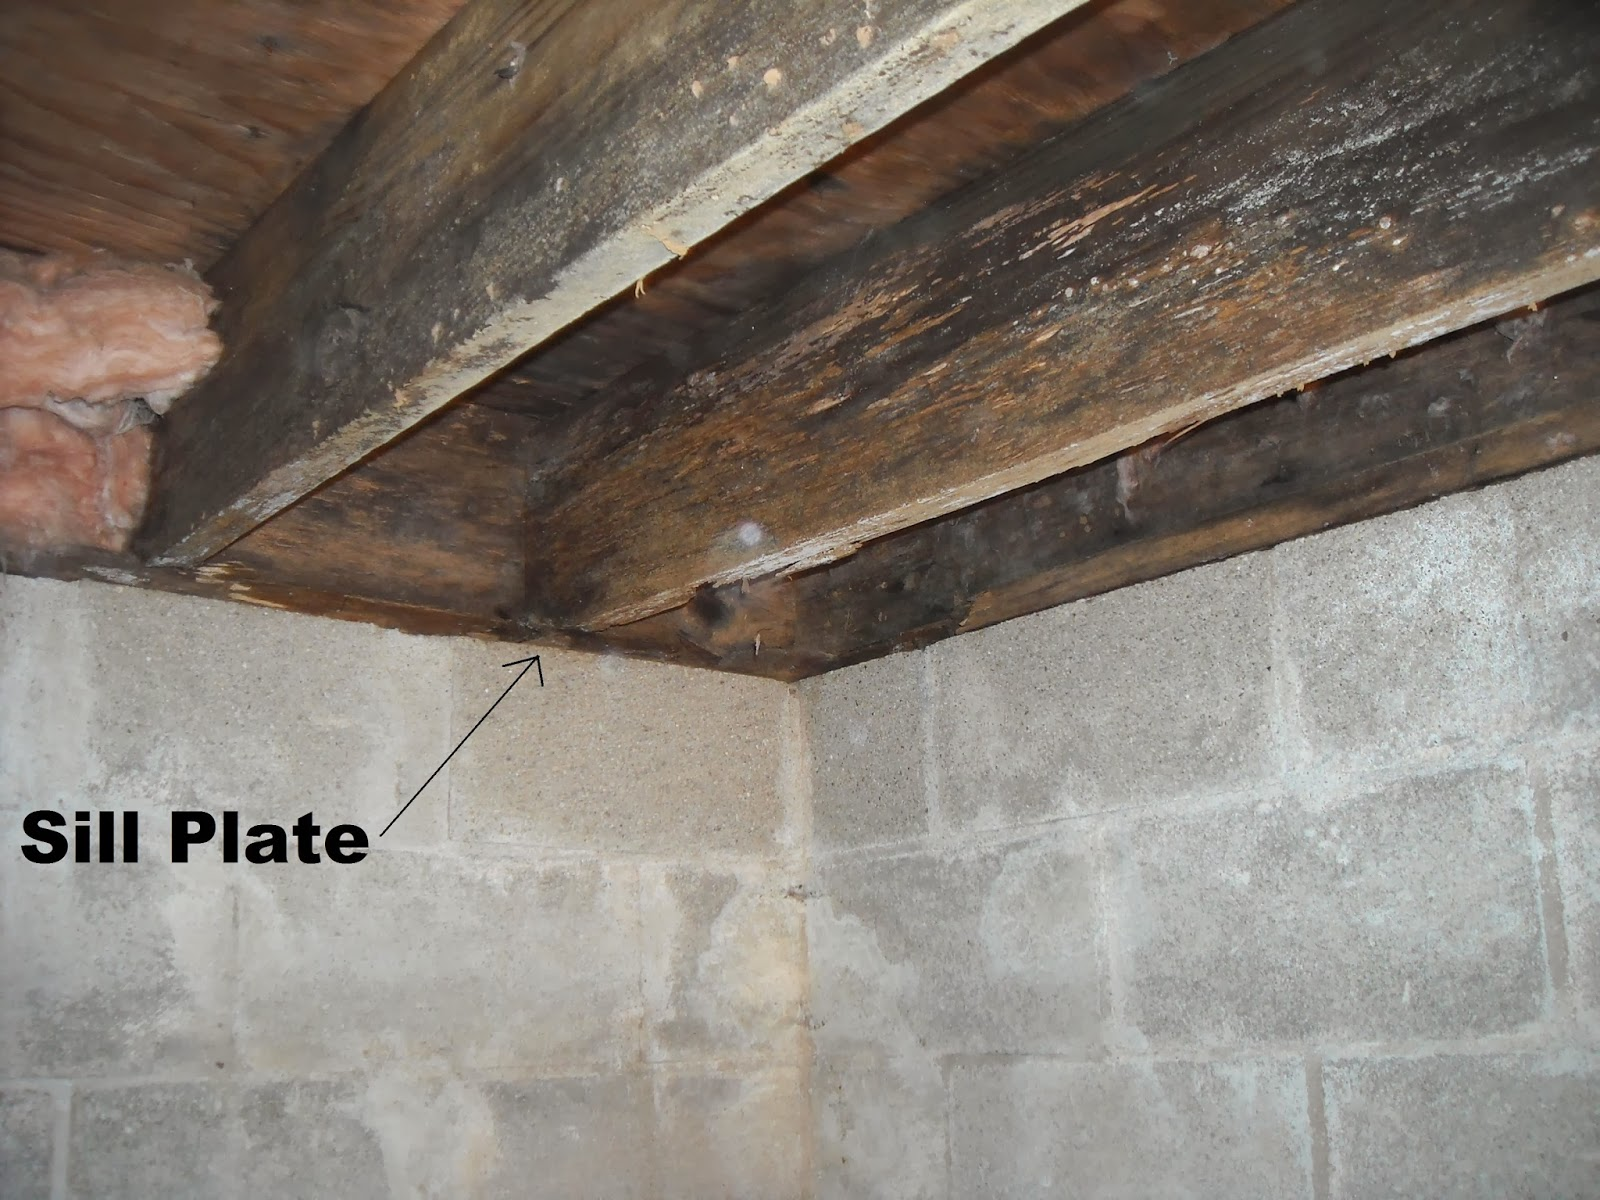 Diy Deck Waterproofing Indiana Crawlspace Repair And Waterproofing Sill Plate